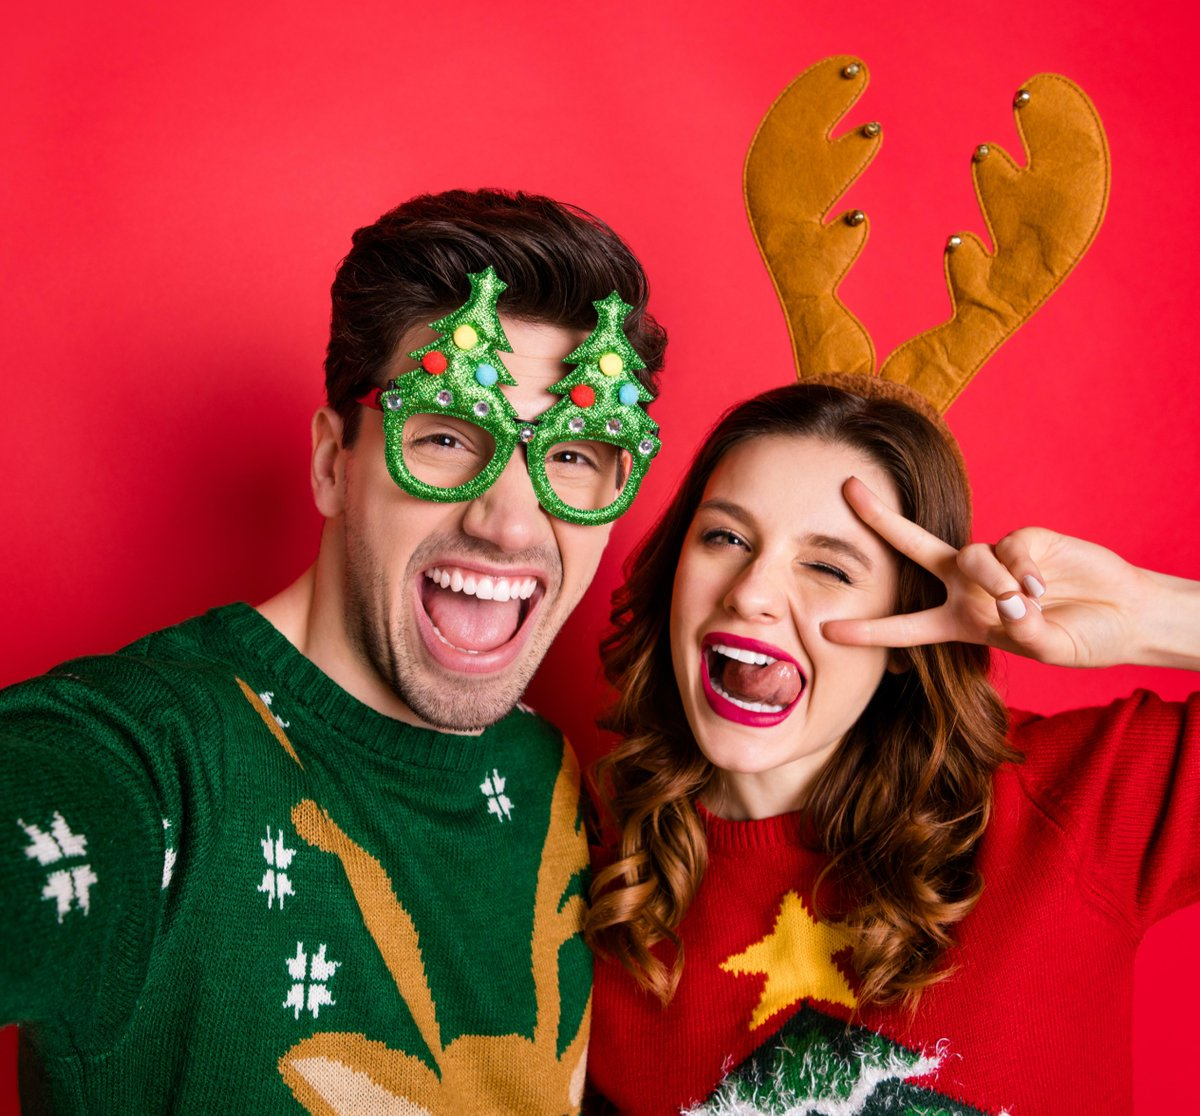 Tomorrow will be #Christmas #jumper day, no need to rush out and make an #impulsive purchase as you can decorate your jumper to make it look as #silly as you feel #comfortable – or even swap your #festive #fashion statement with a friend